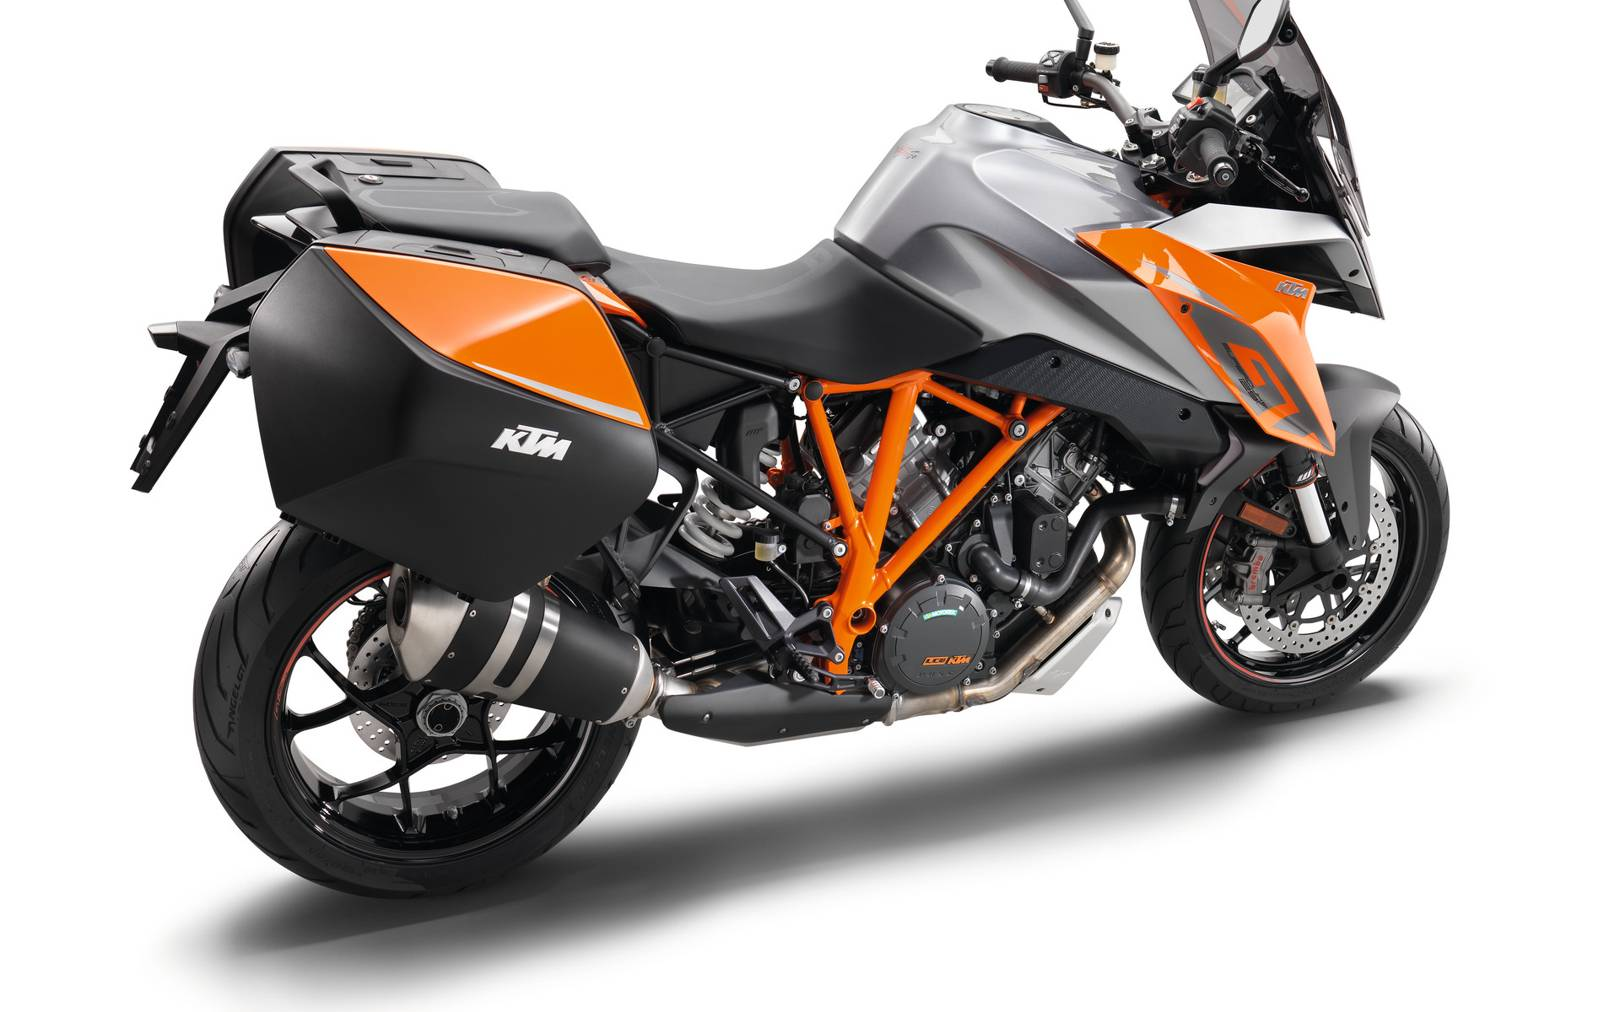 Ktm 1290 Super Duke Gt Review British Gq Consumer Electronics Vehicle Gps Car Video